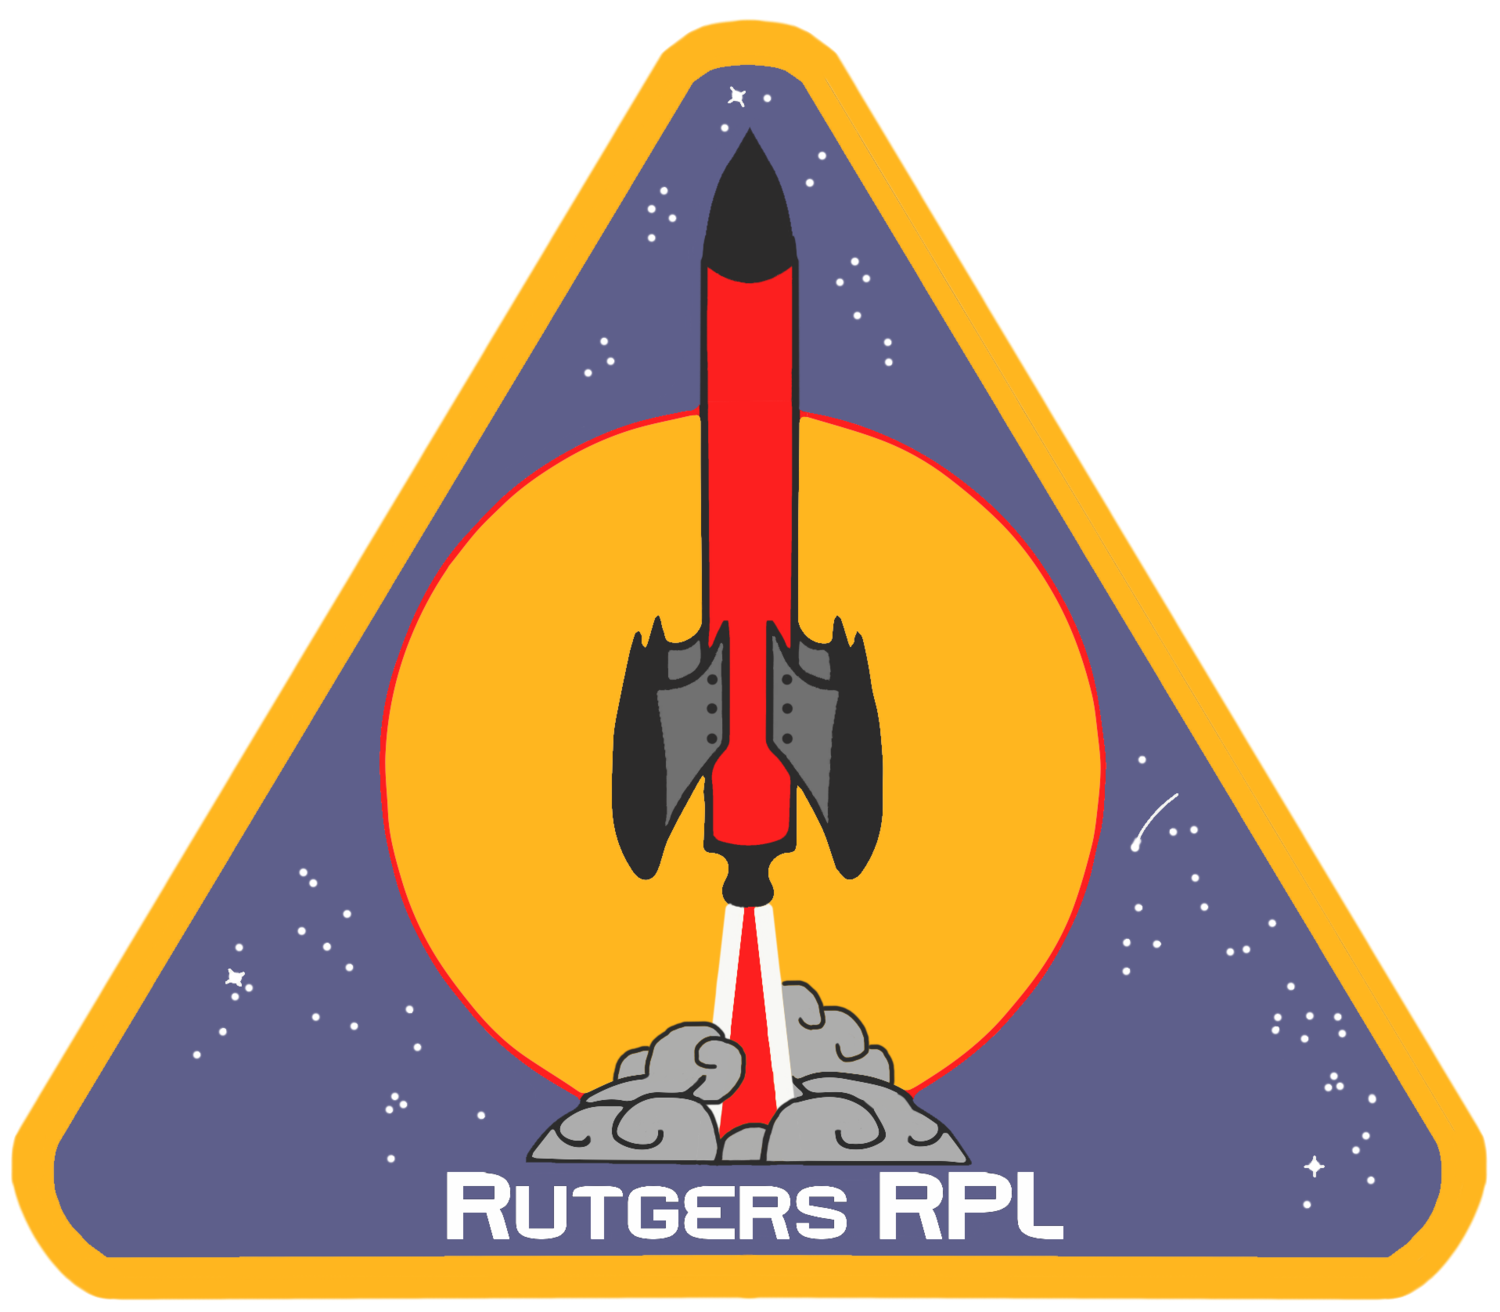 Rutgers Rocket Propulsion Lab